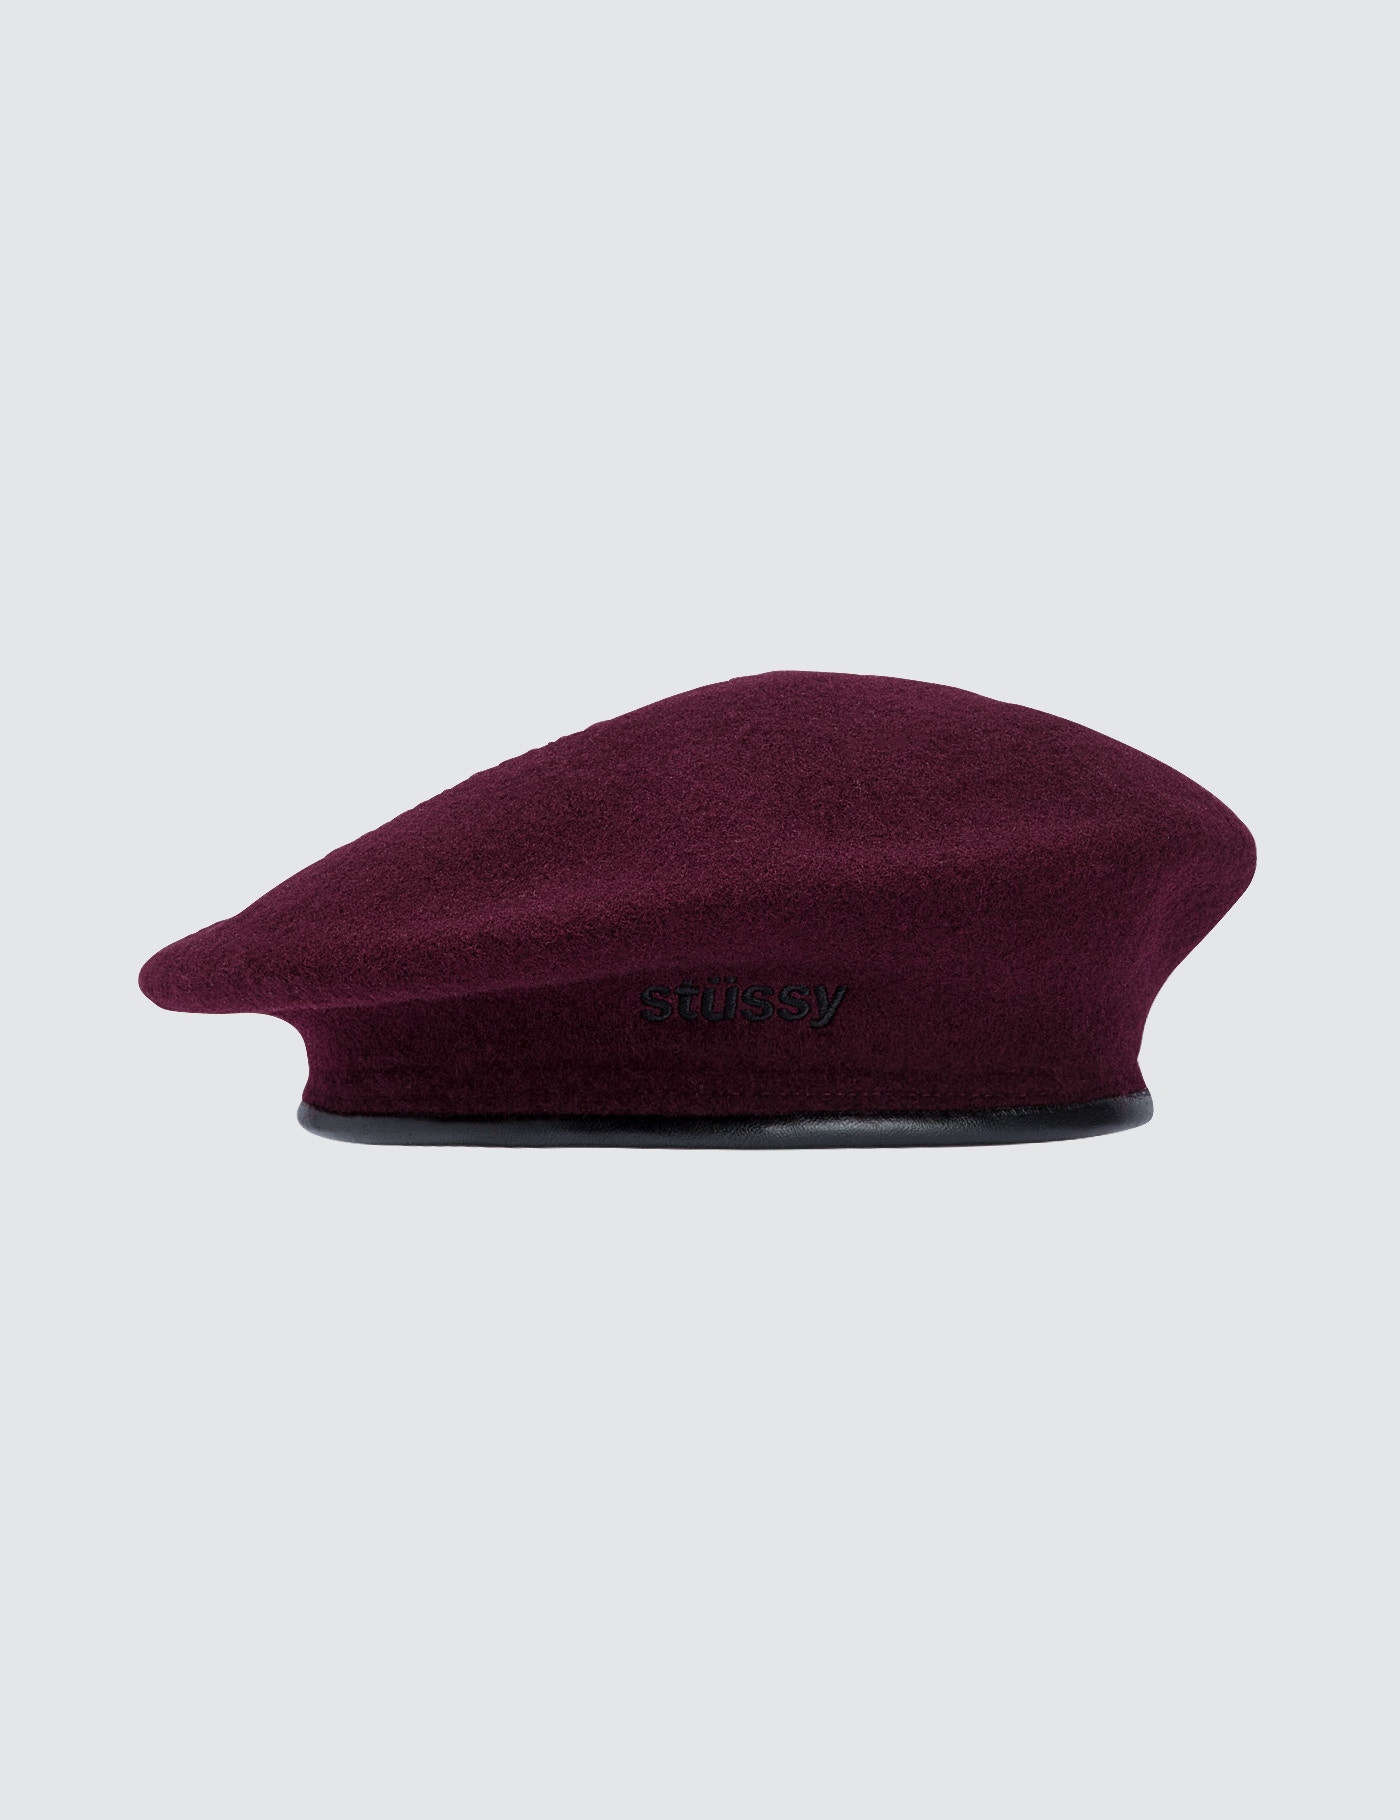 d3e90bc518a40 Stussy Military Beret  Stussy Military Beret ...